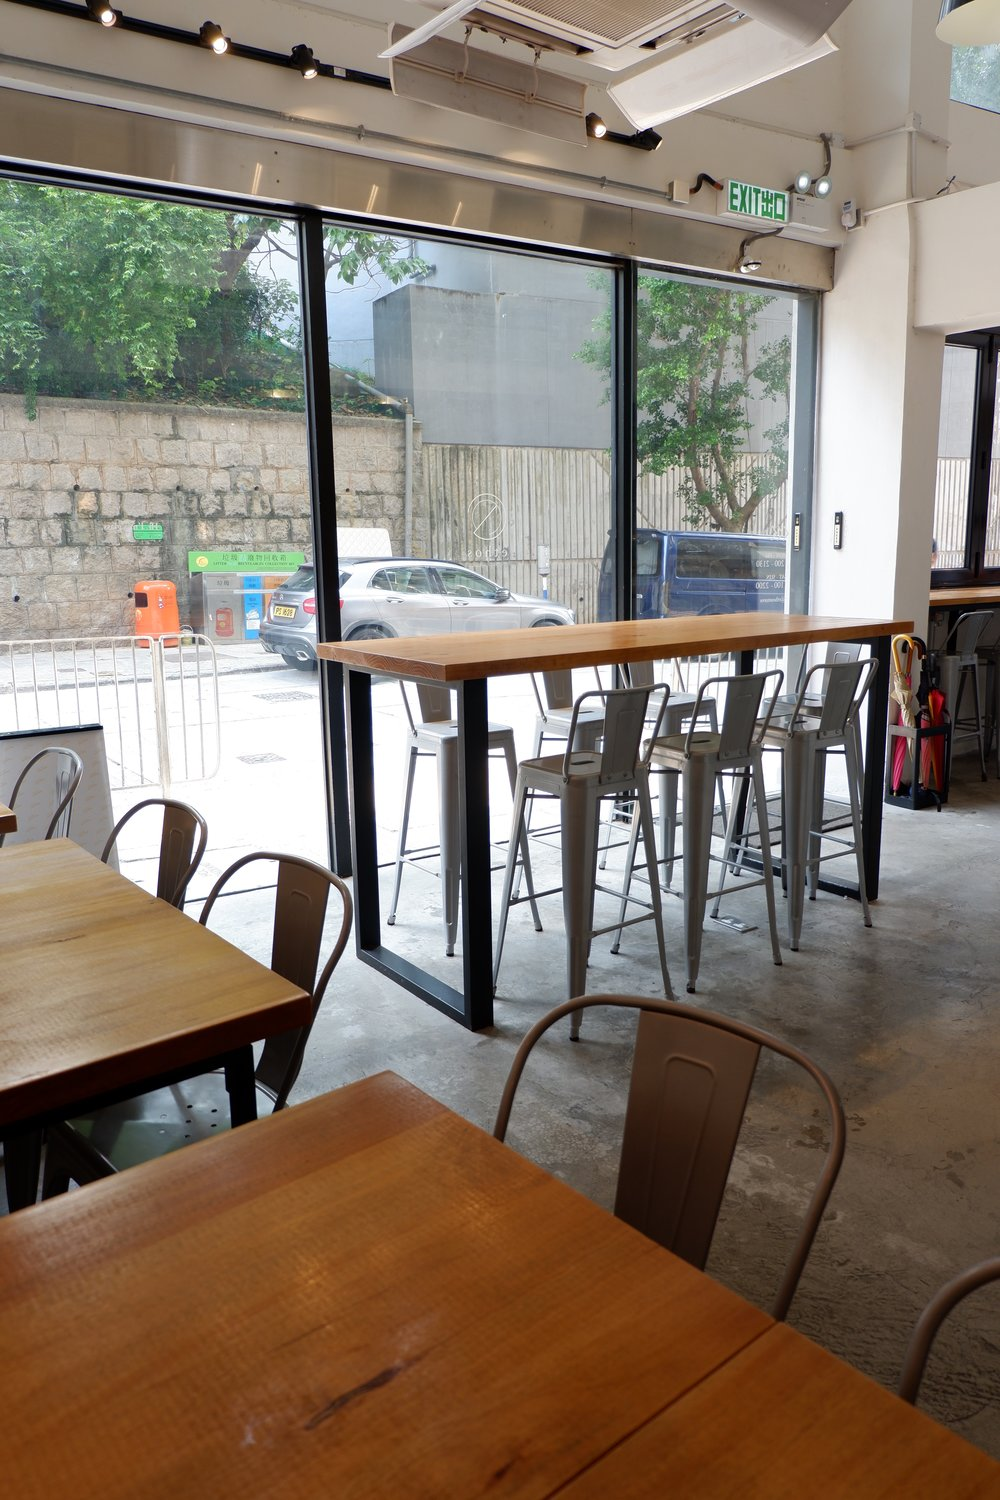 industrial-style-chair-and-table-at-ethos-cafe